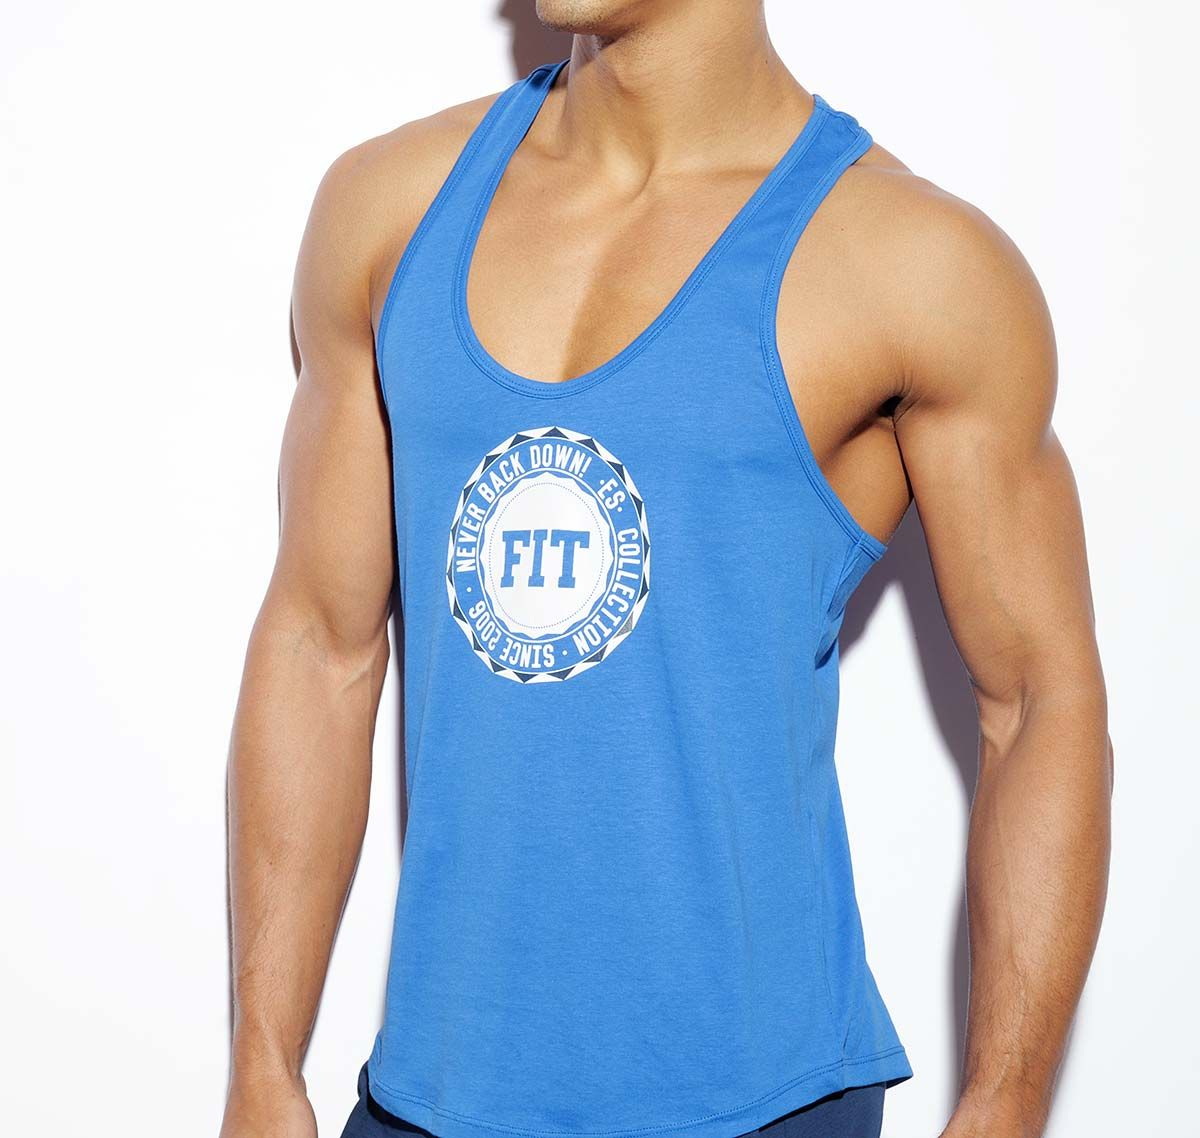 ES Collection NEVER BACK DOWN BADGE TANK TOP TS170, royalblau